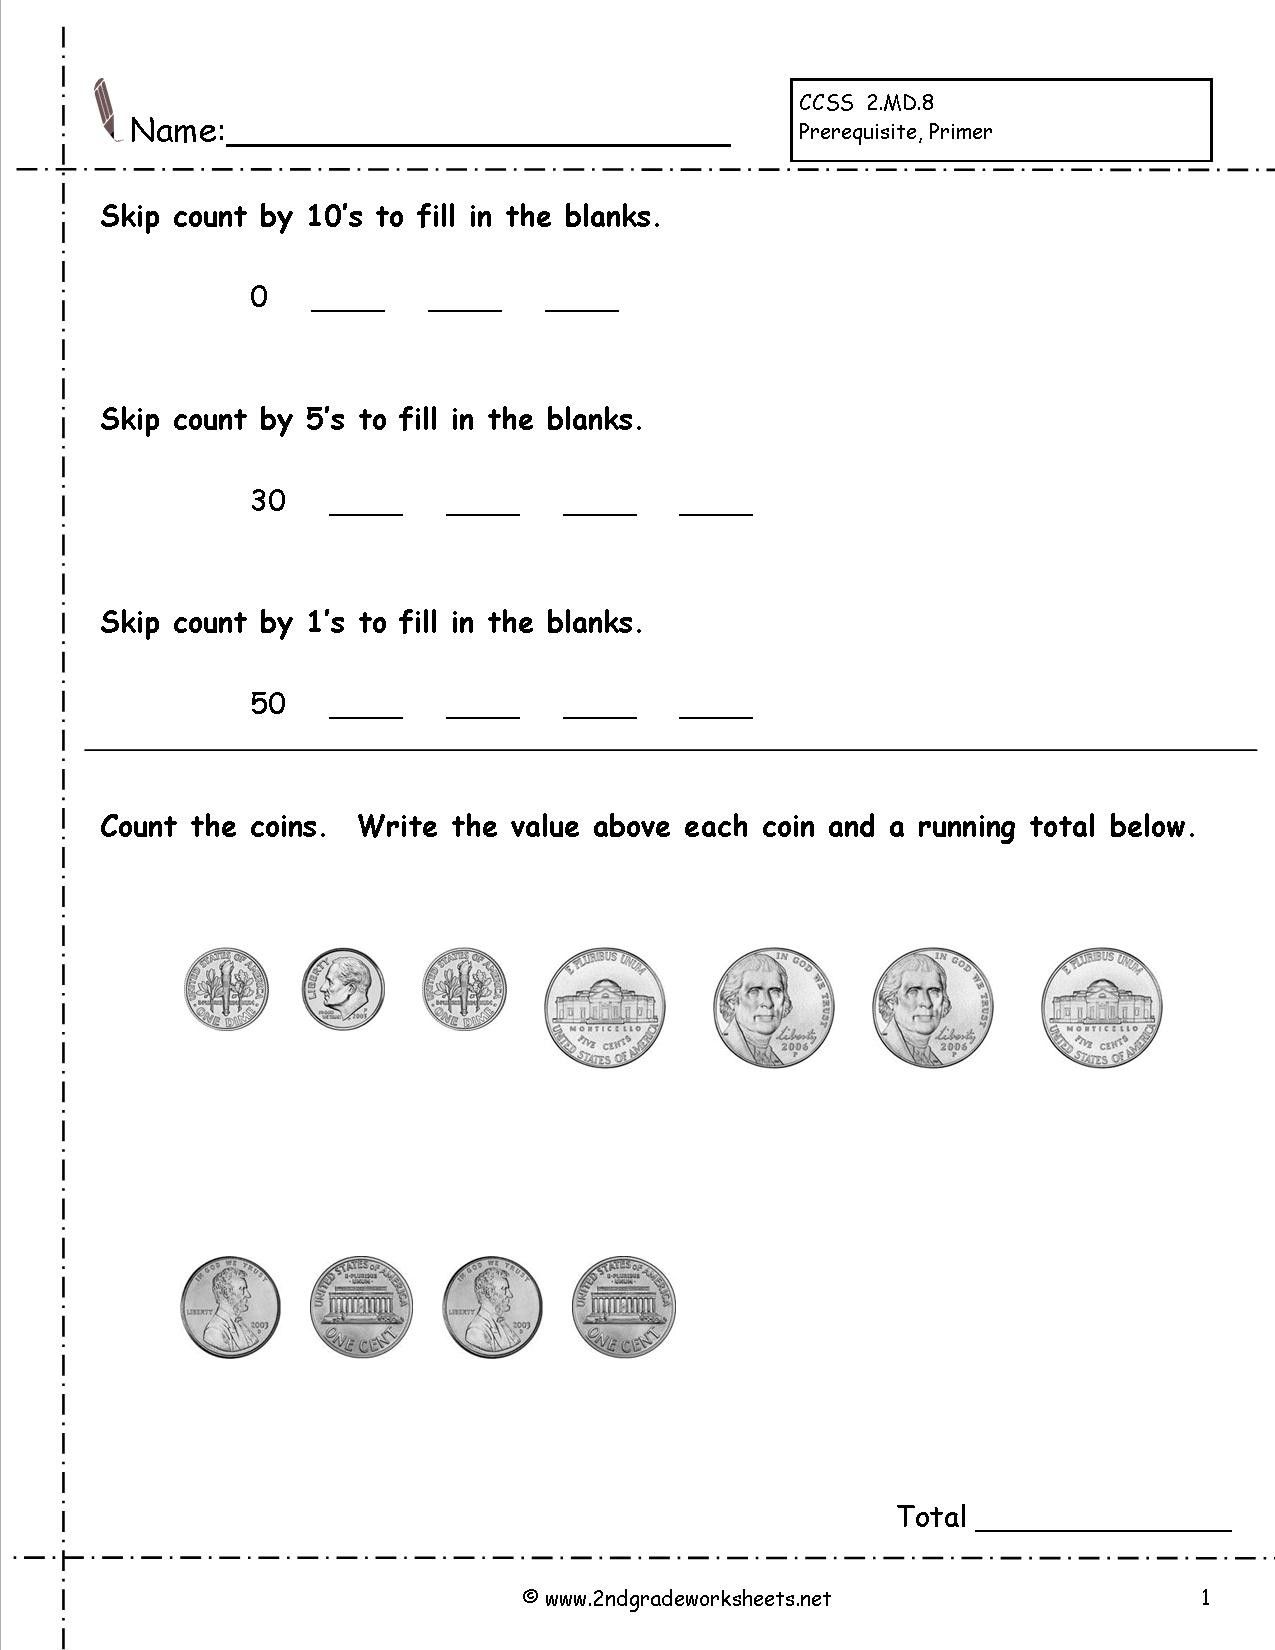 4 Free Math Worksheets Third Grade 3 Counting Money Money